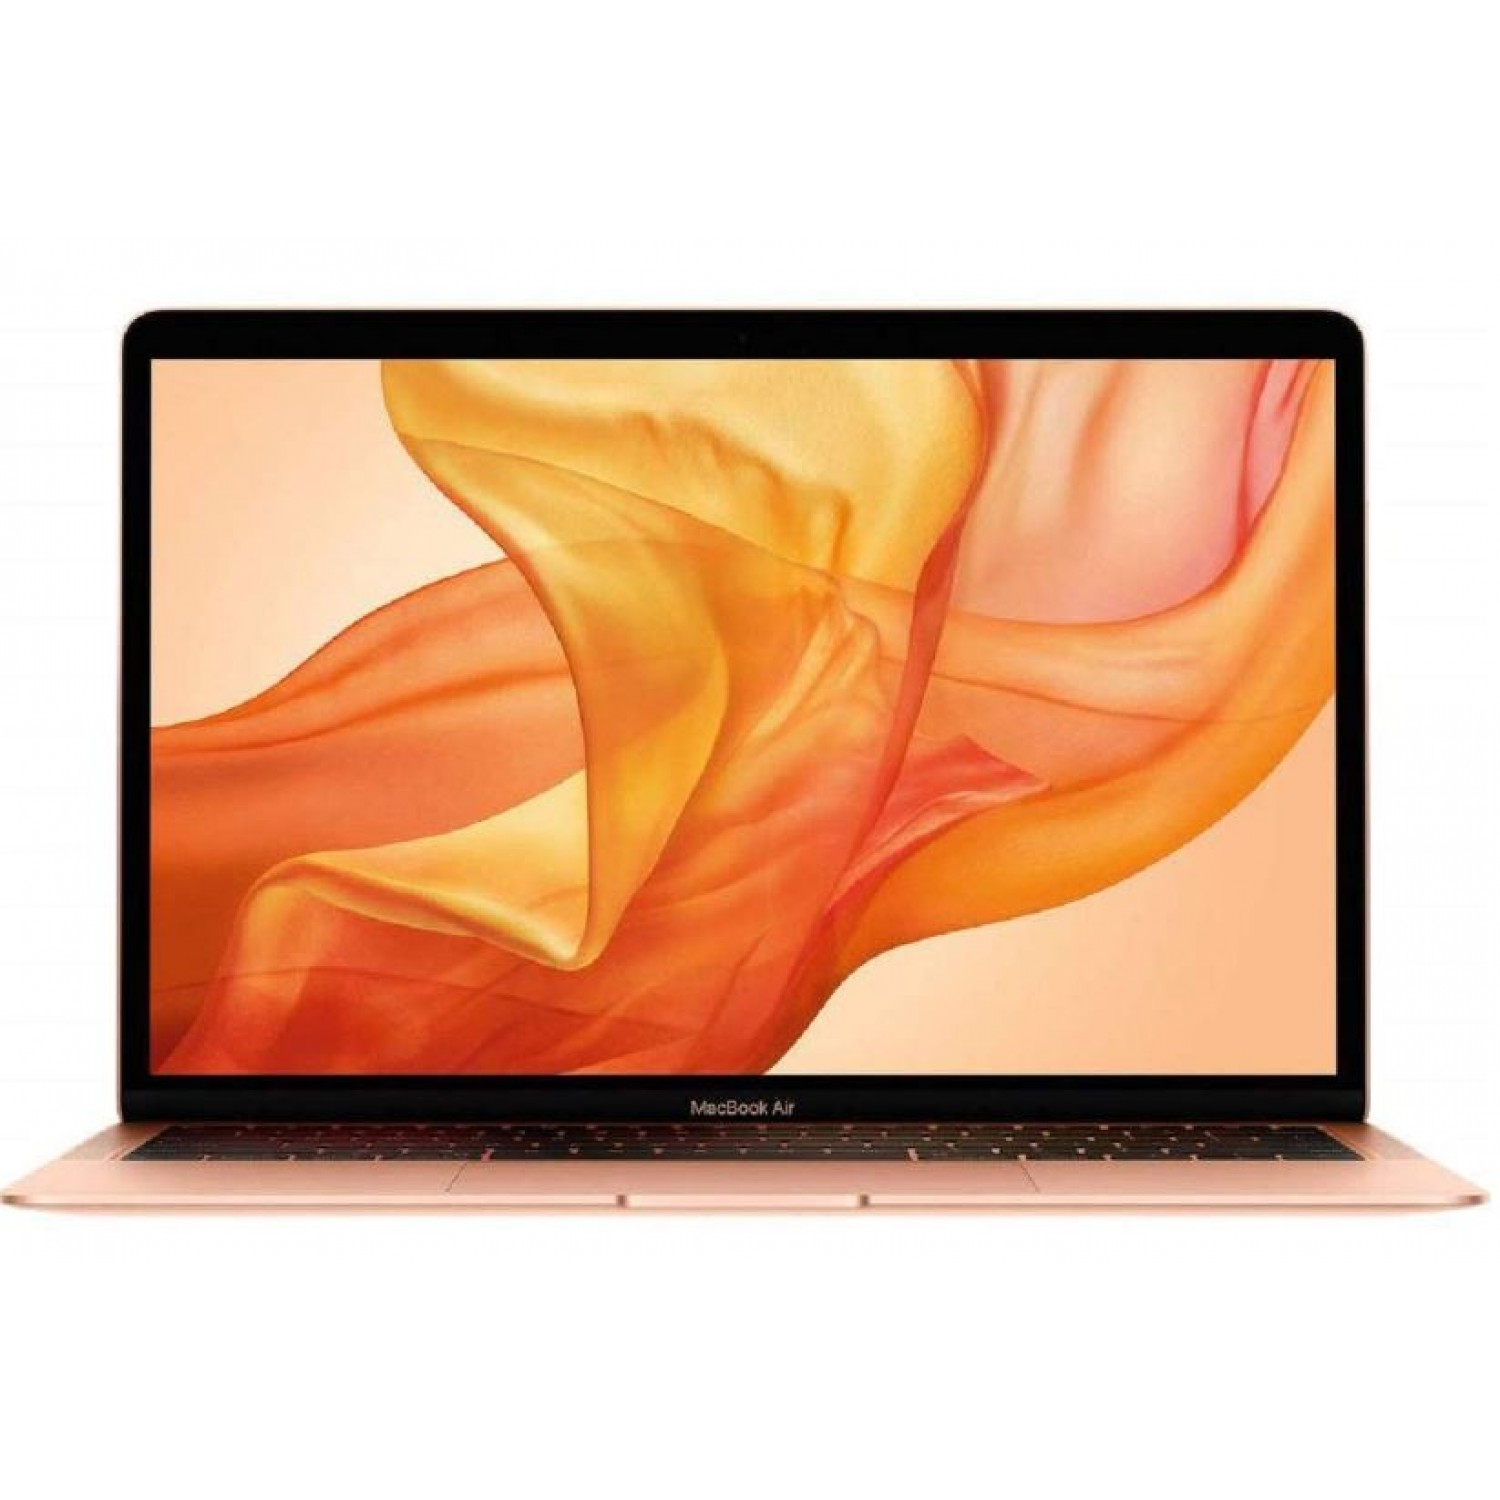 Apple MacBook Air with Touch ID MVFM2AE Laptop - Intel Core i5-8th Gen, 1.6 core, 13 Inch with Retina, 128GB SSD, 8GB, MacOS, Arabic Keyboard, Gold 2019